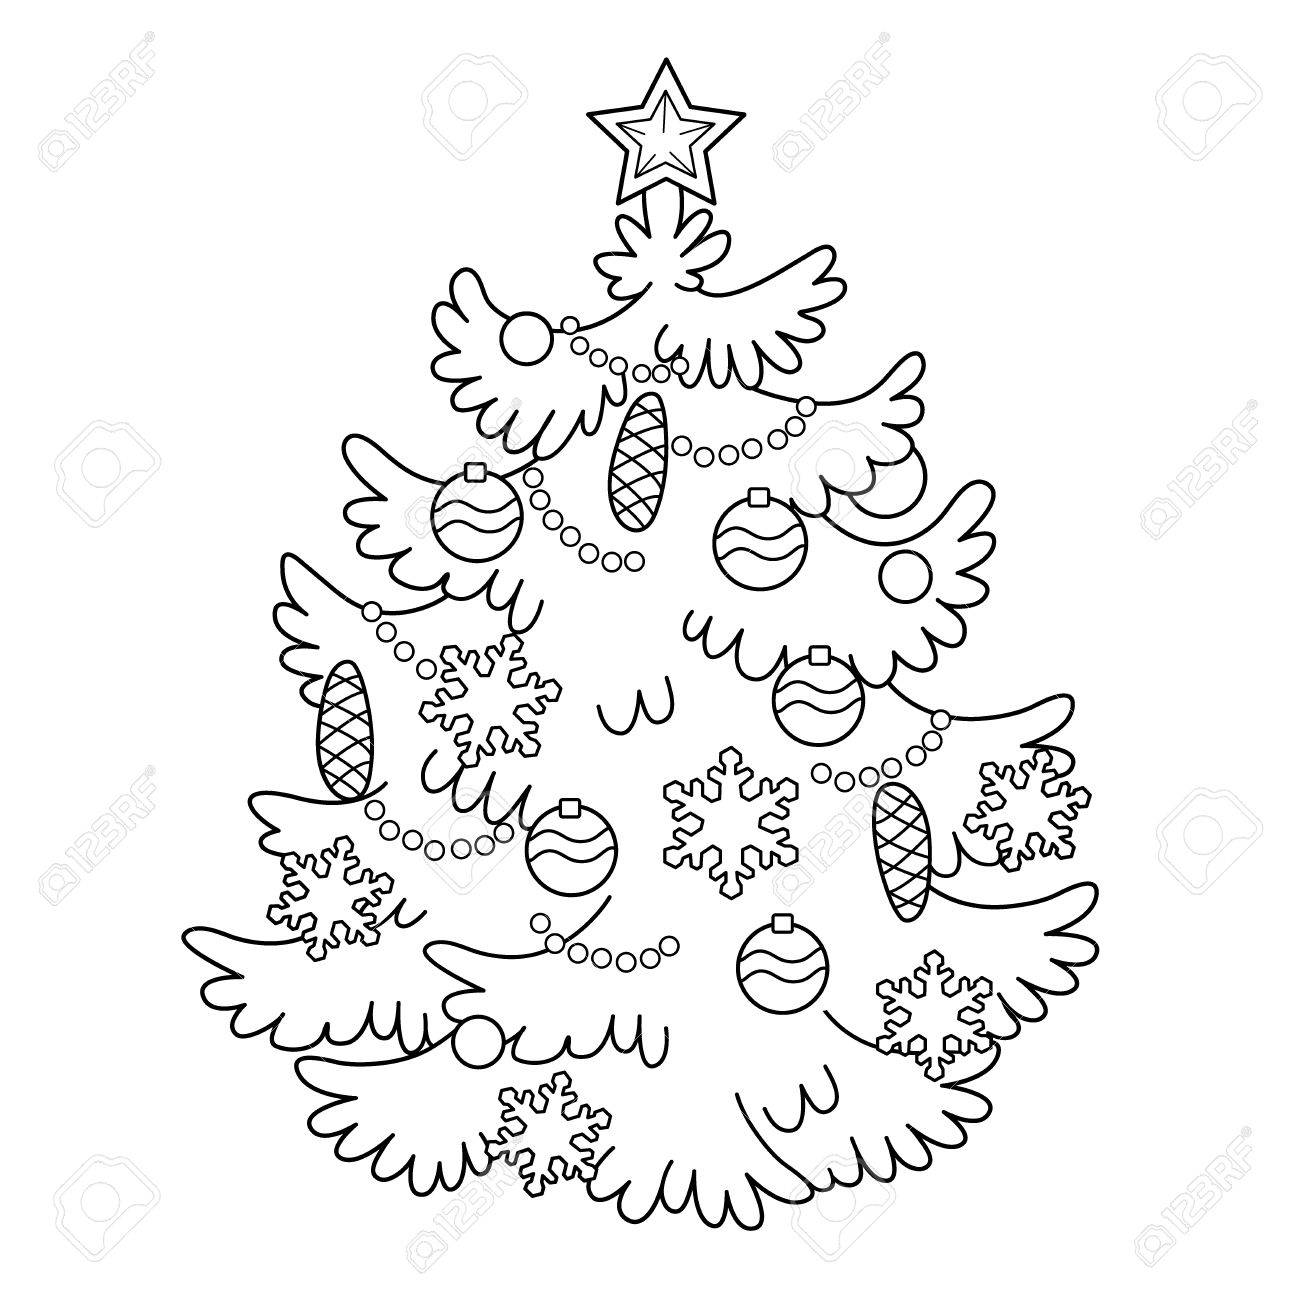 christmas coloring pages | Printable christmas coloring pages ... | 1300x1300